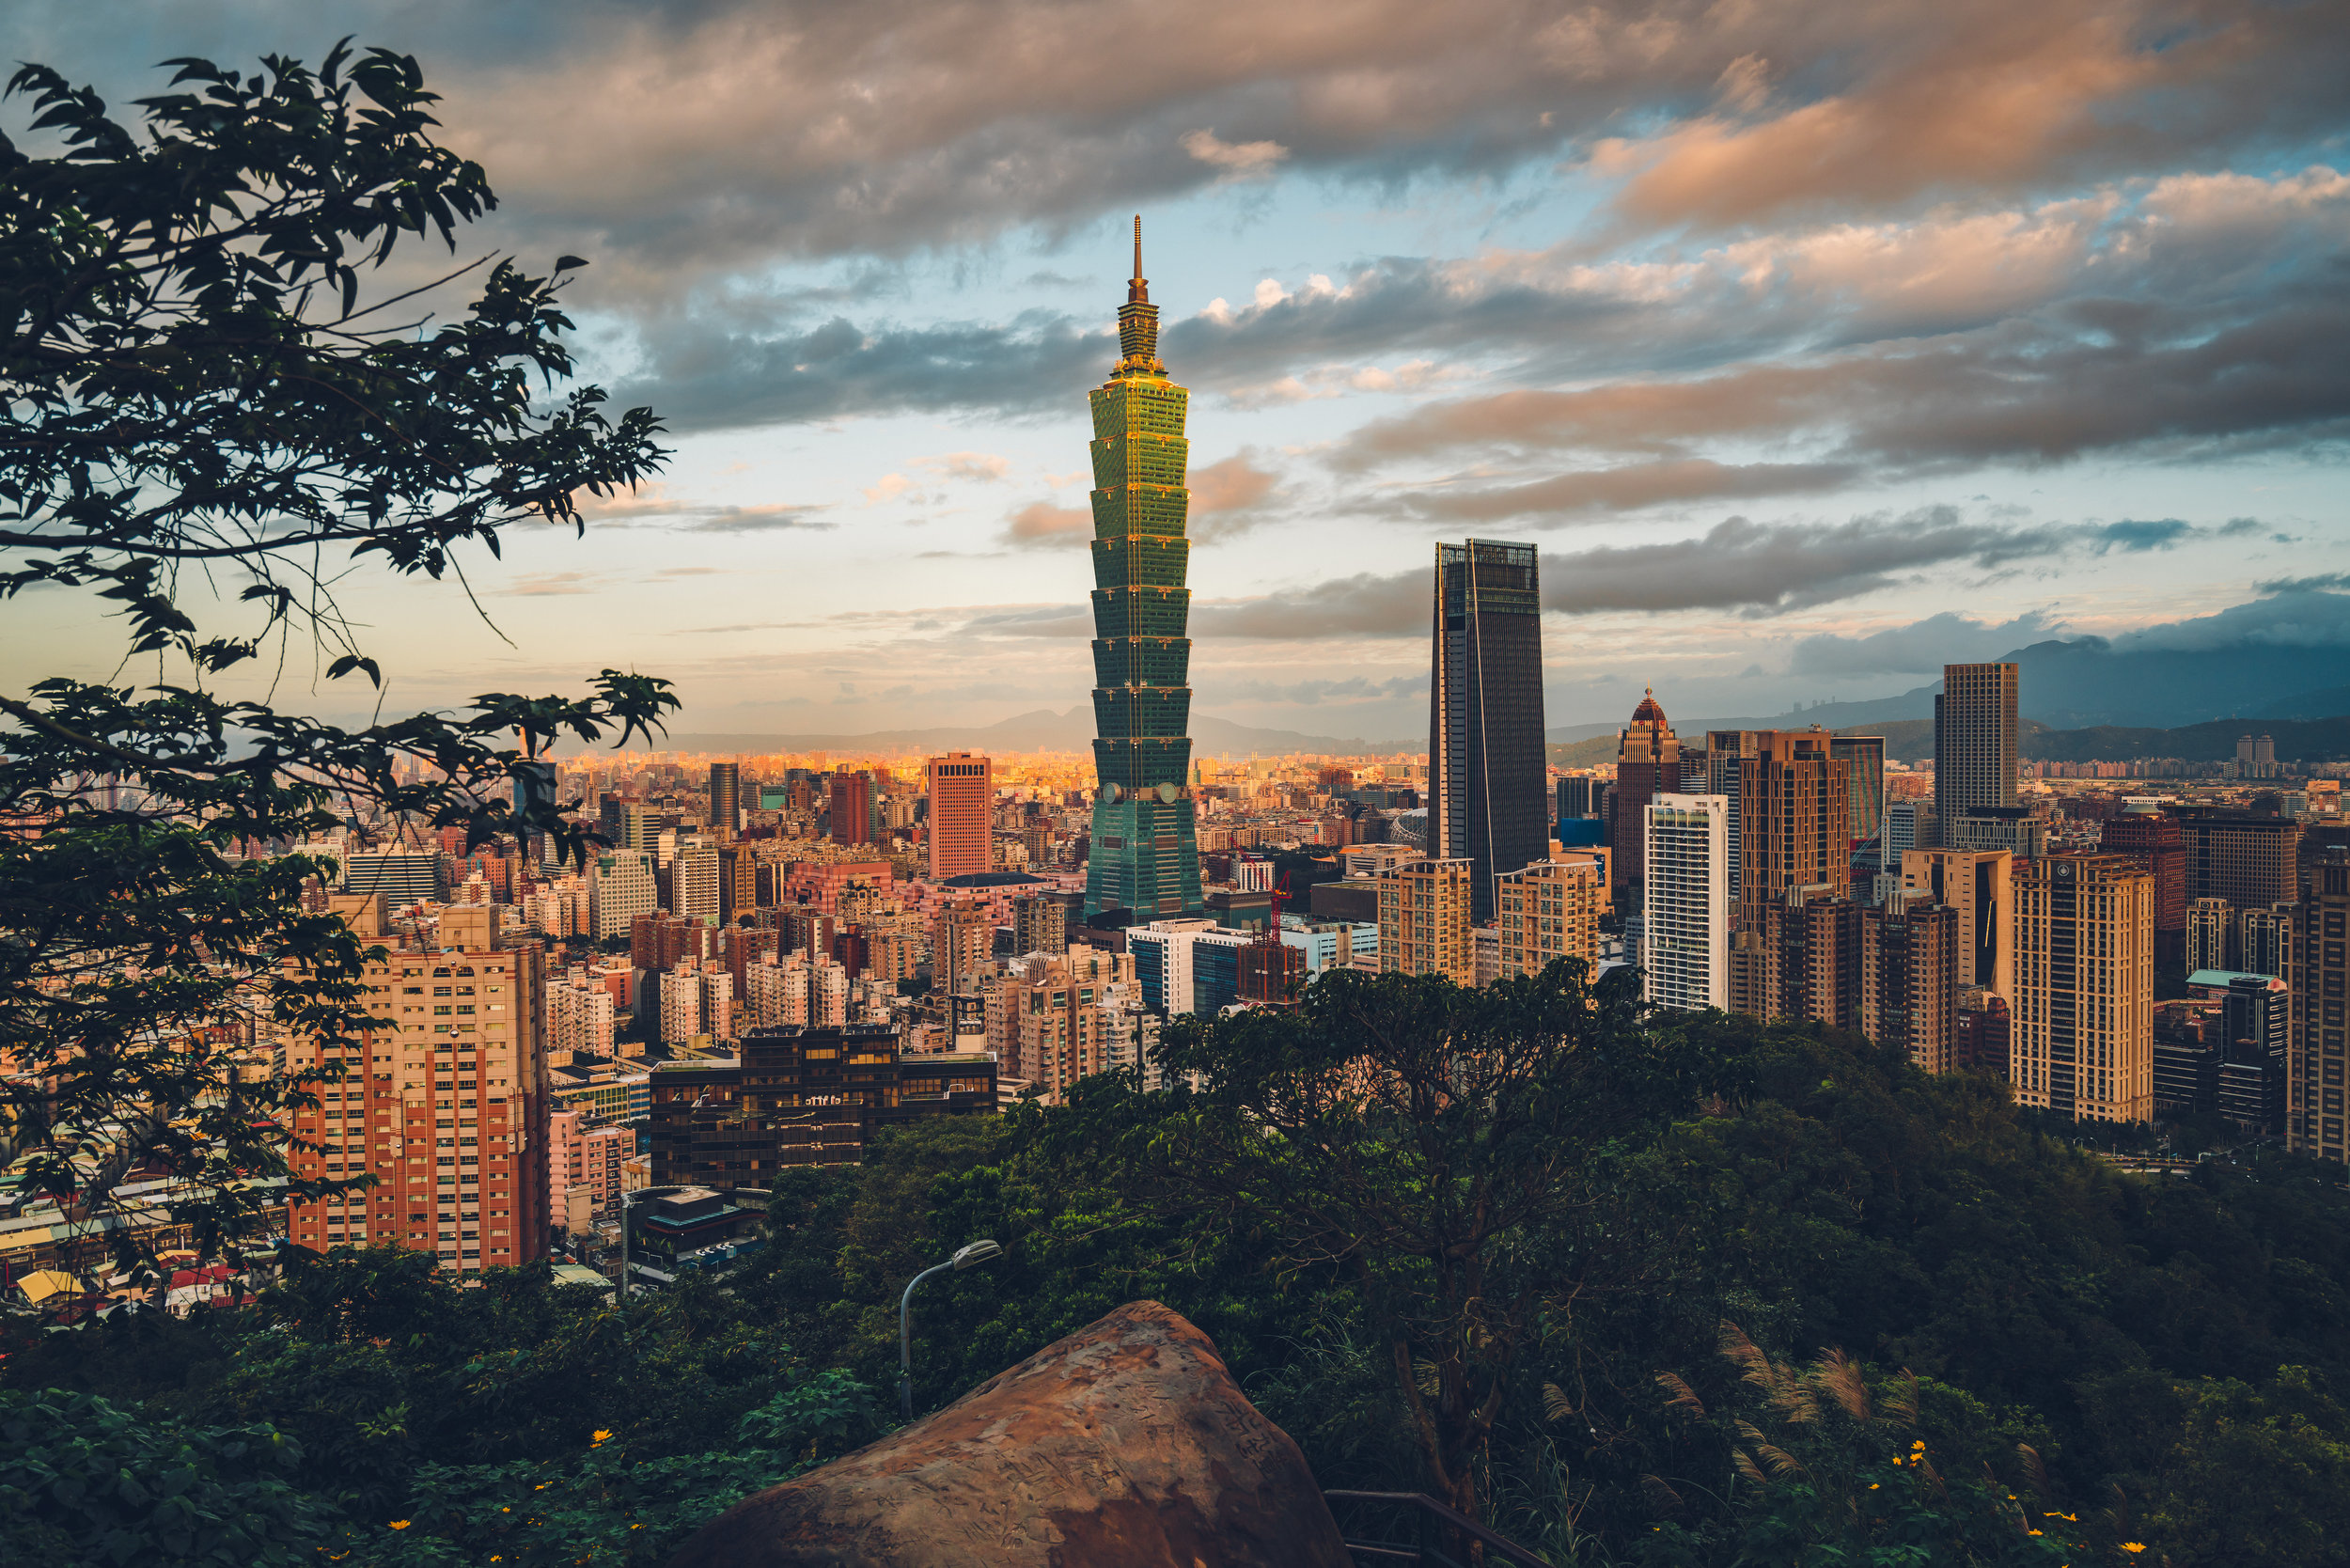 Taiwan - Taiwan was my home from 2014 to 2015. During that time I fell in love with the mountainous country and the amazing & friendly people. Taiwan will always hold a special place in my heart.